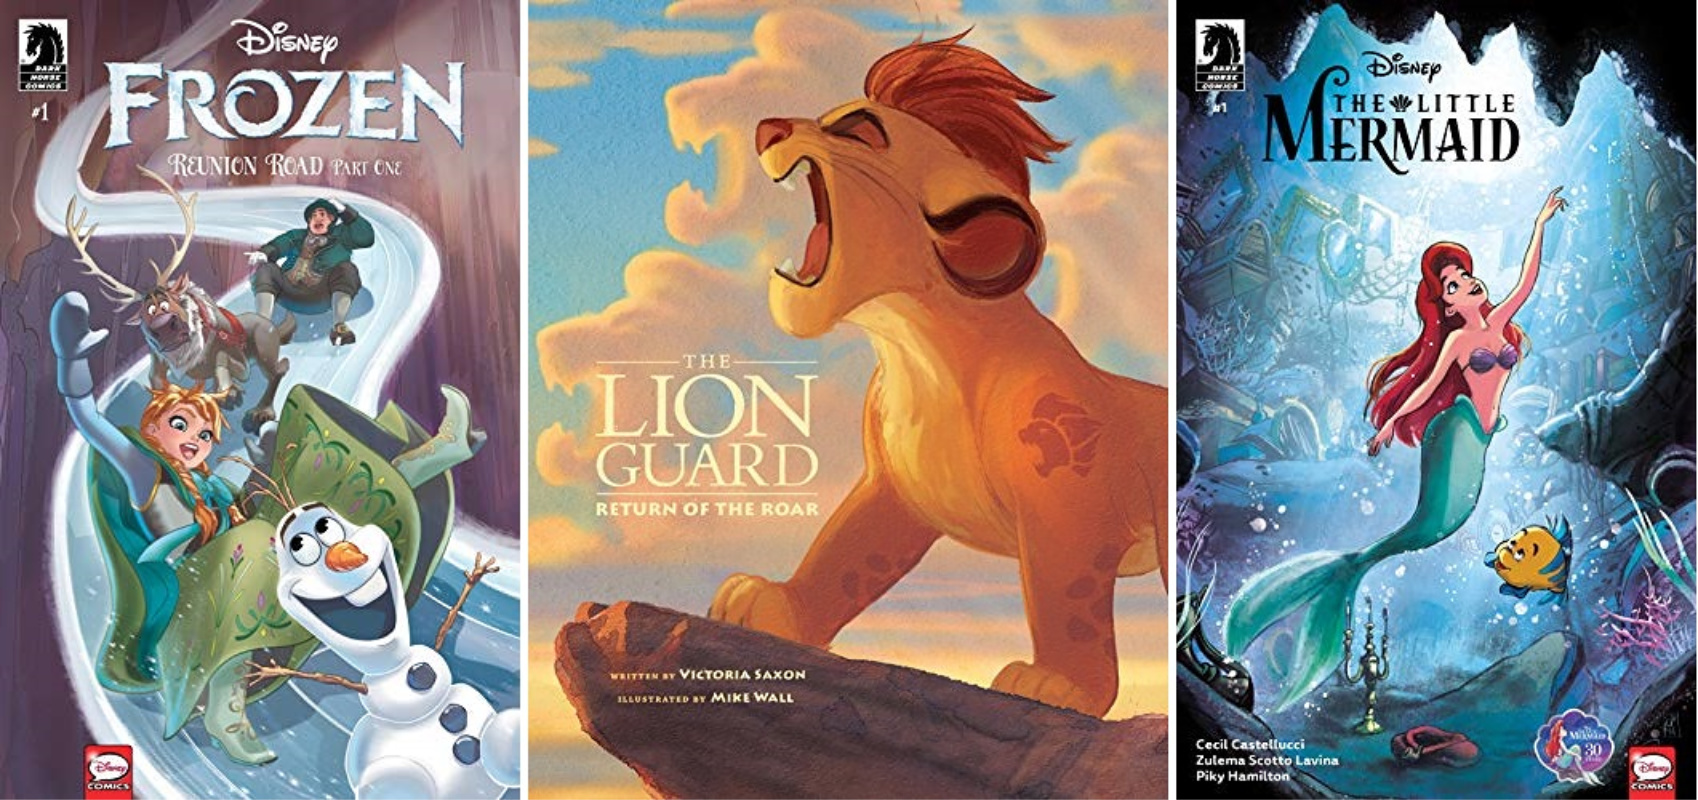 Disney eBooks FREE on Amazon (up to $16 Value) – Frozen, Jungle Book, Little Mermaid + MORE!